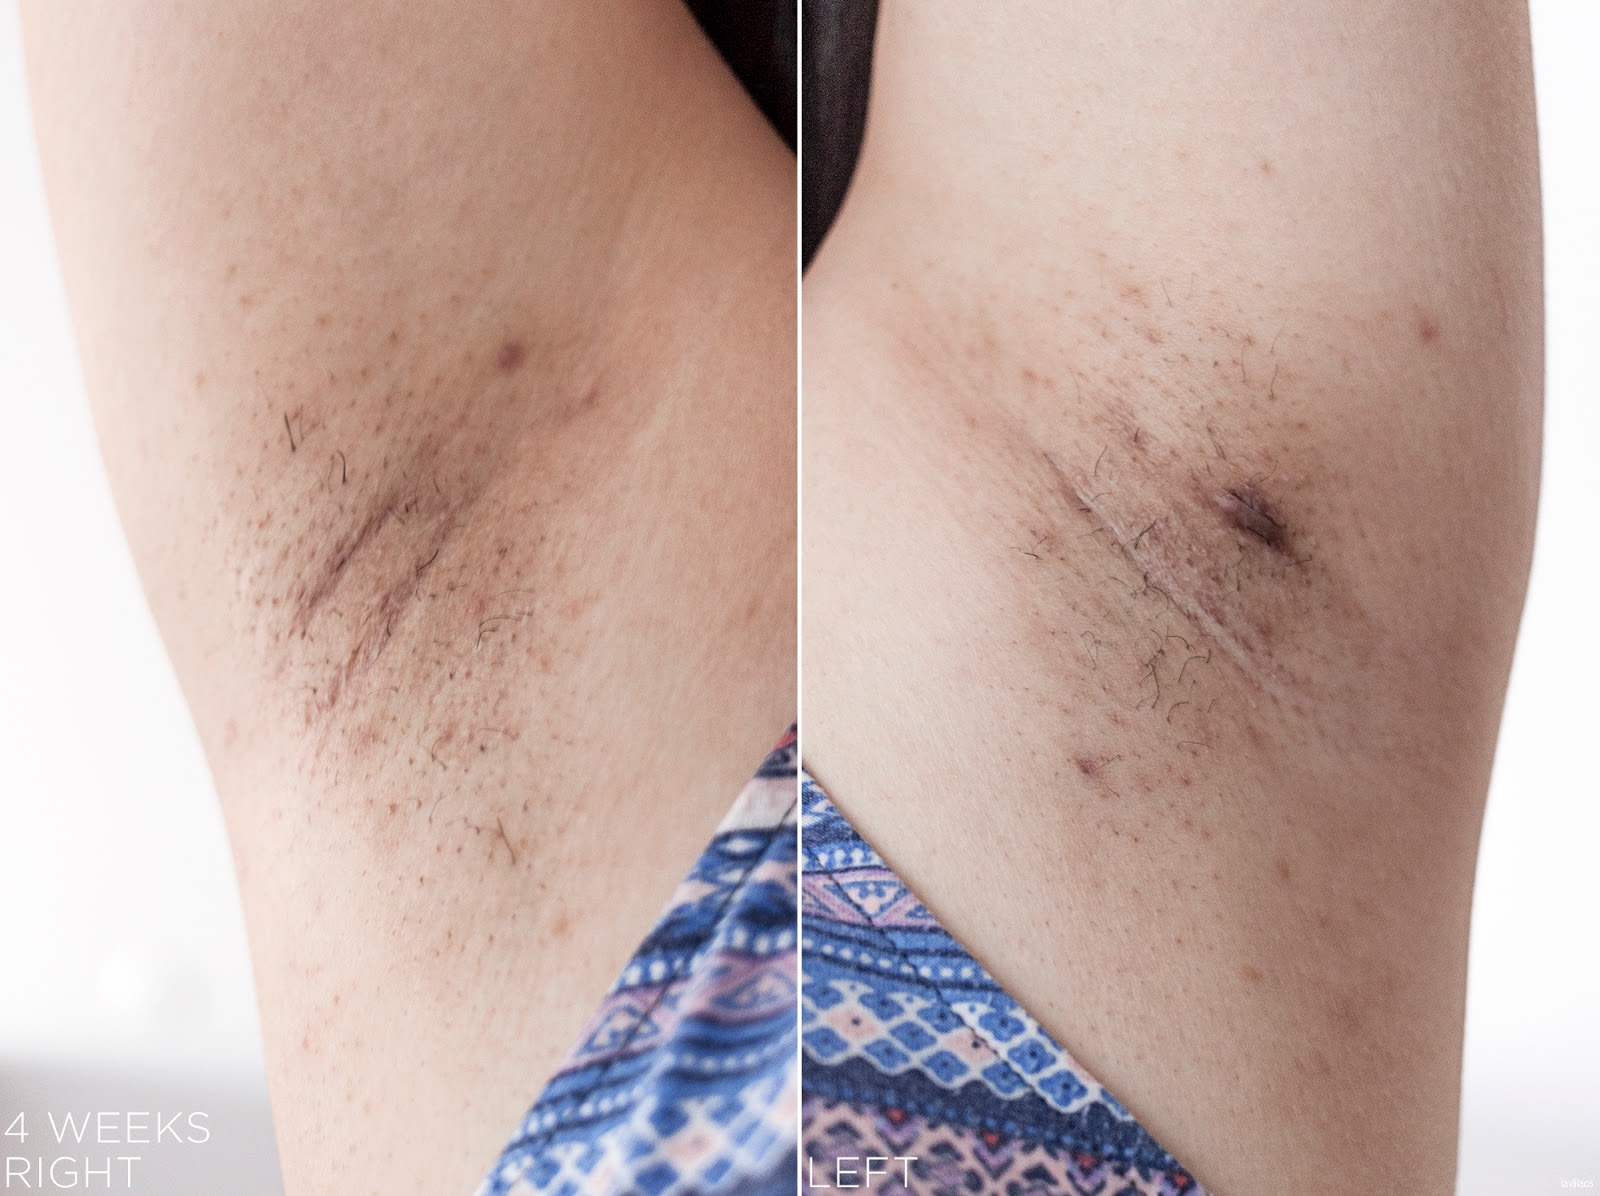 tria Hair Removal Laser Armpits Hair 4 Weeks, 1 month